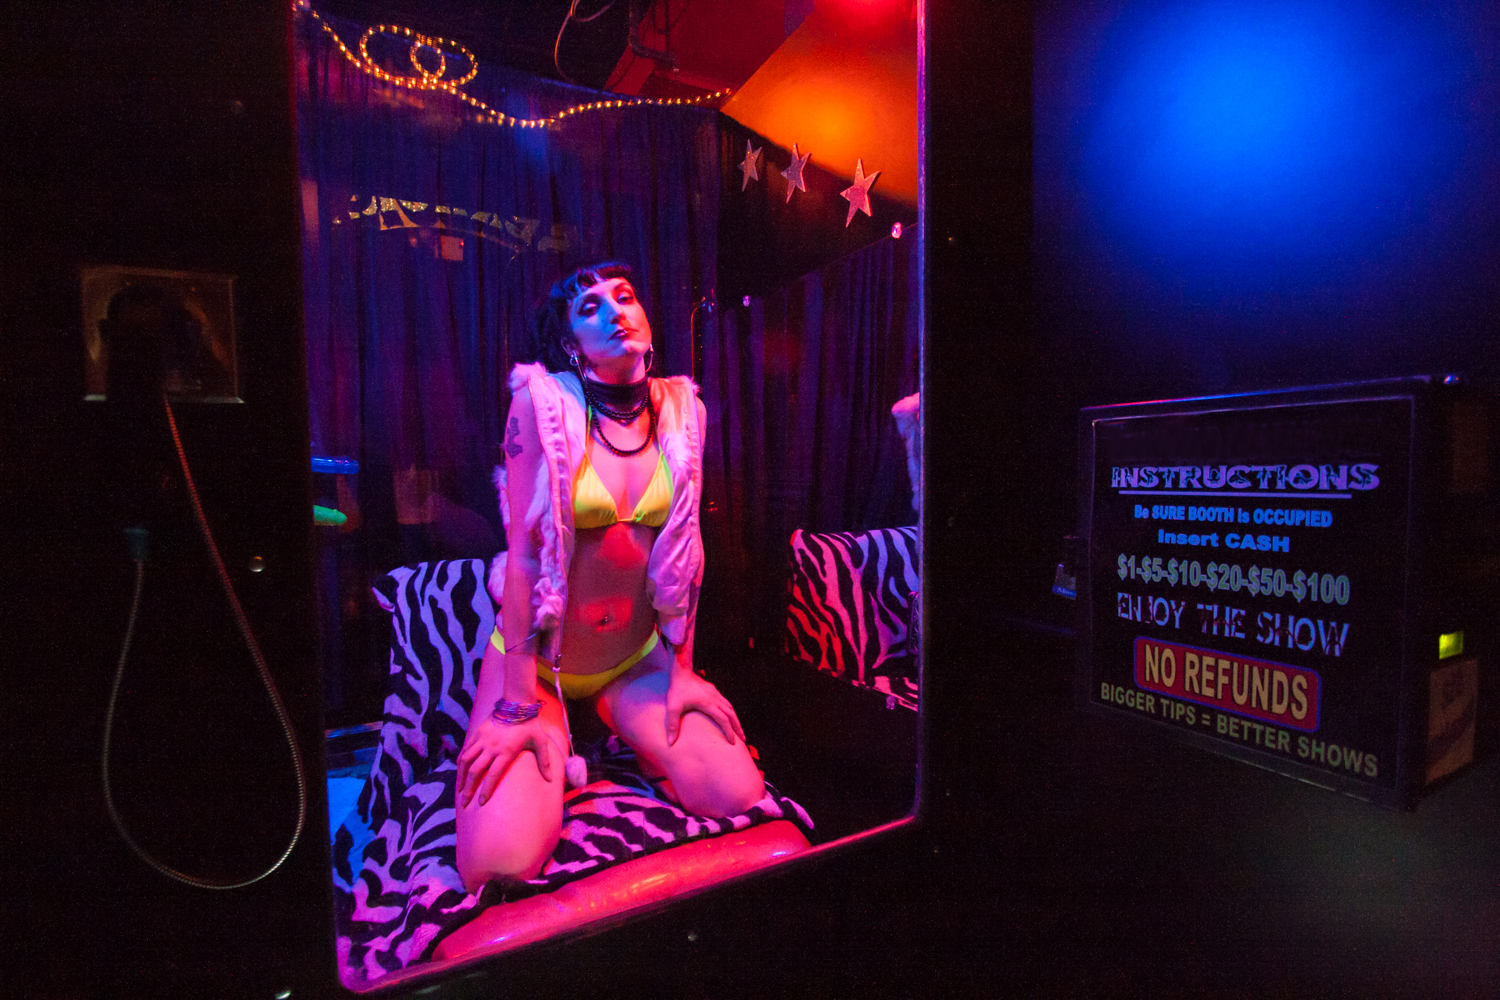 Jezebel, a live peep show performer, poses in her booth